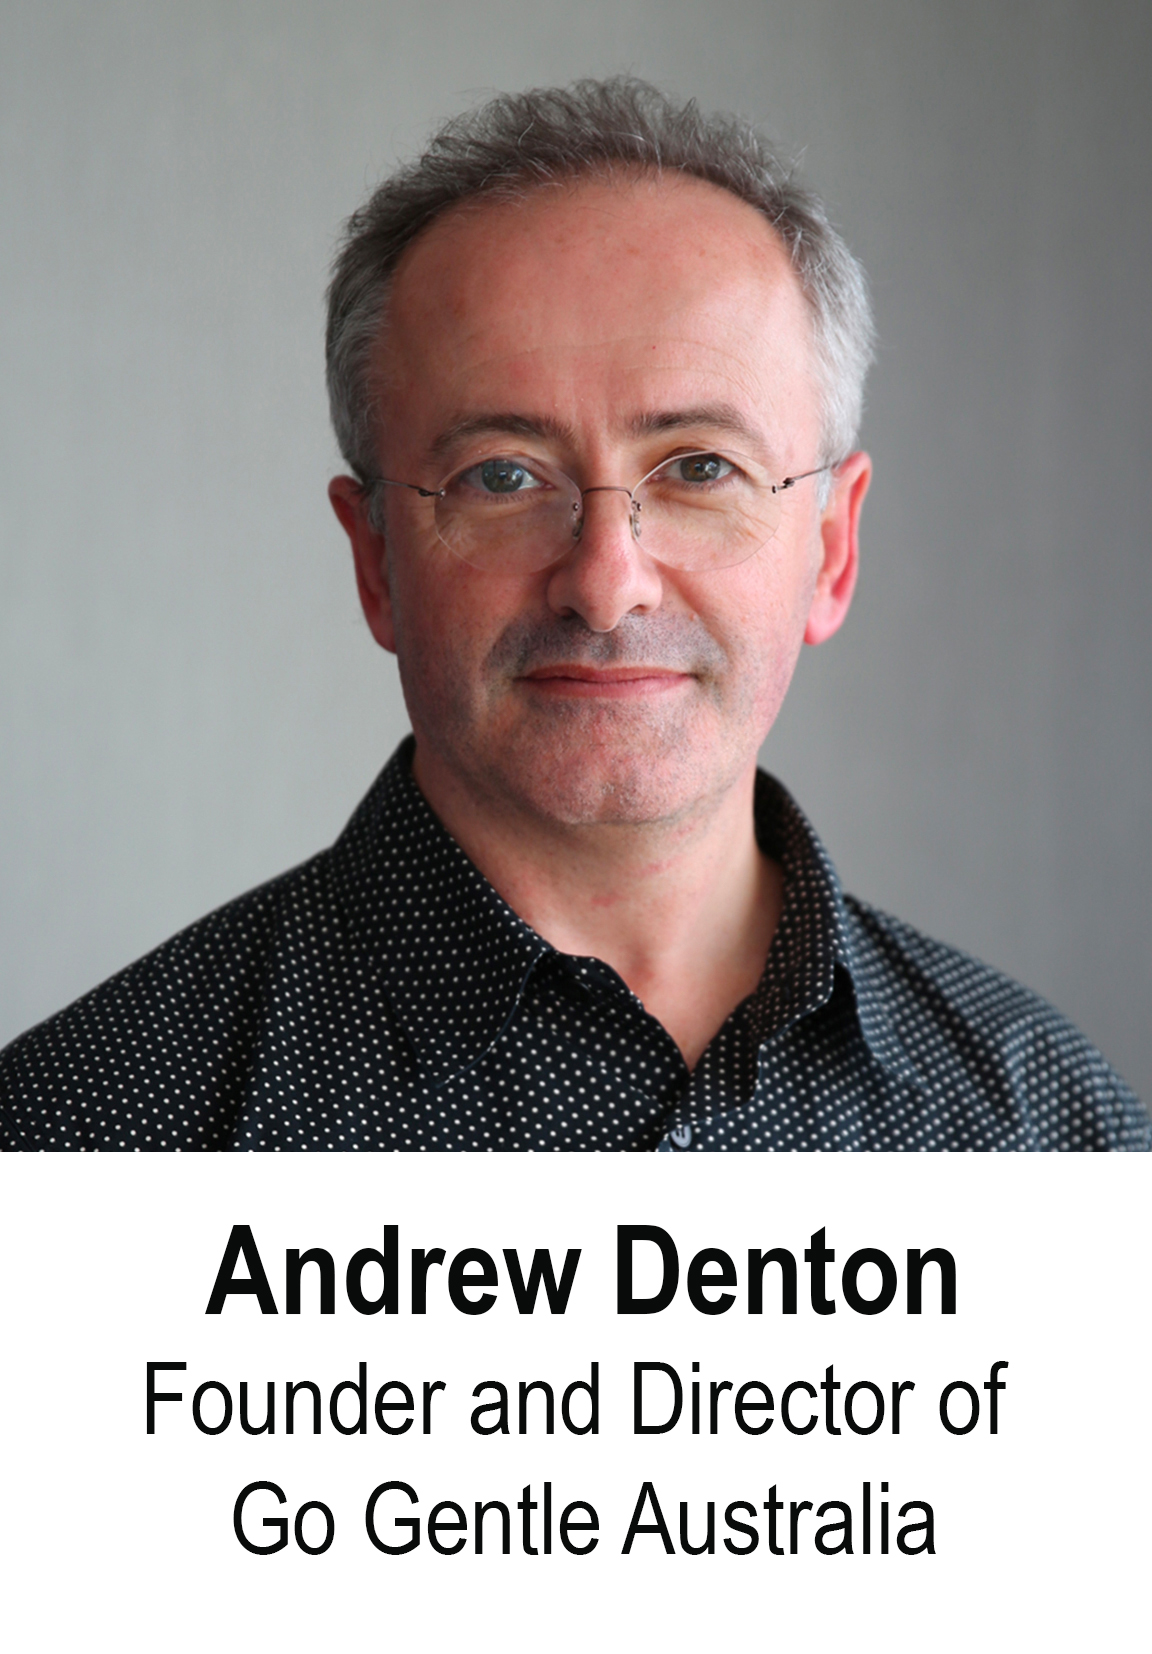 andrew_denton_picture_and_text.jpg